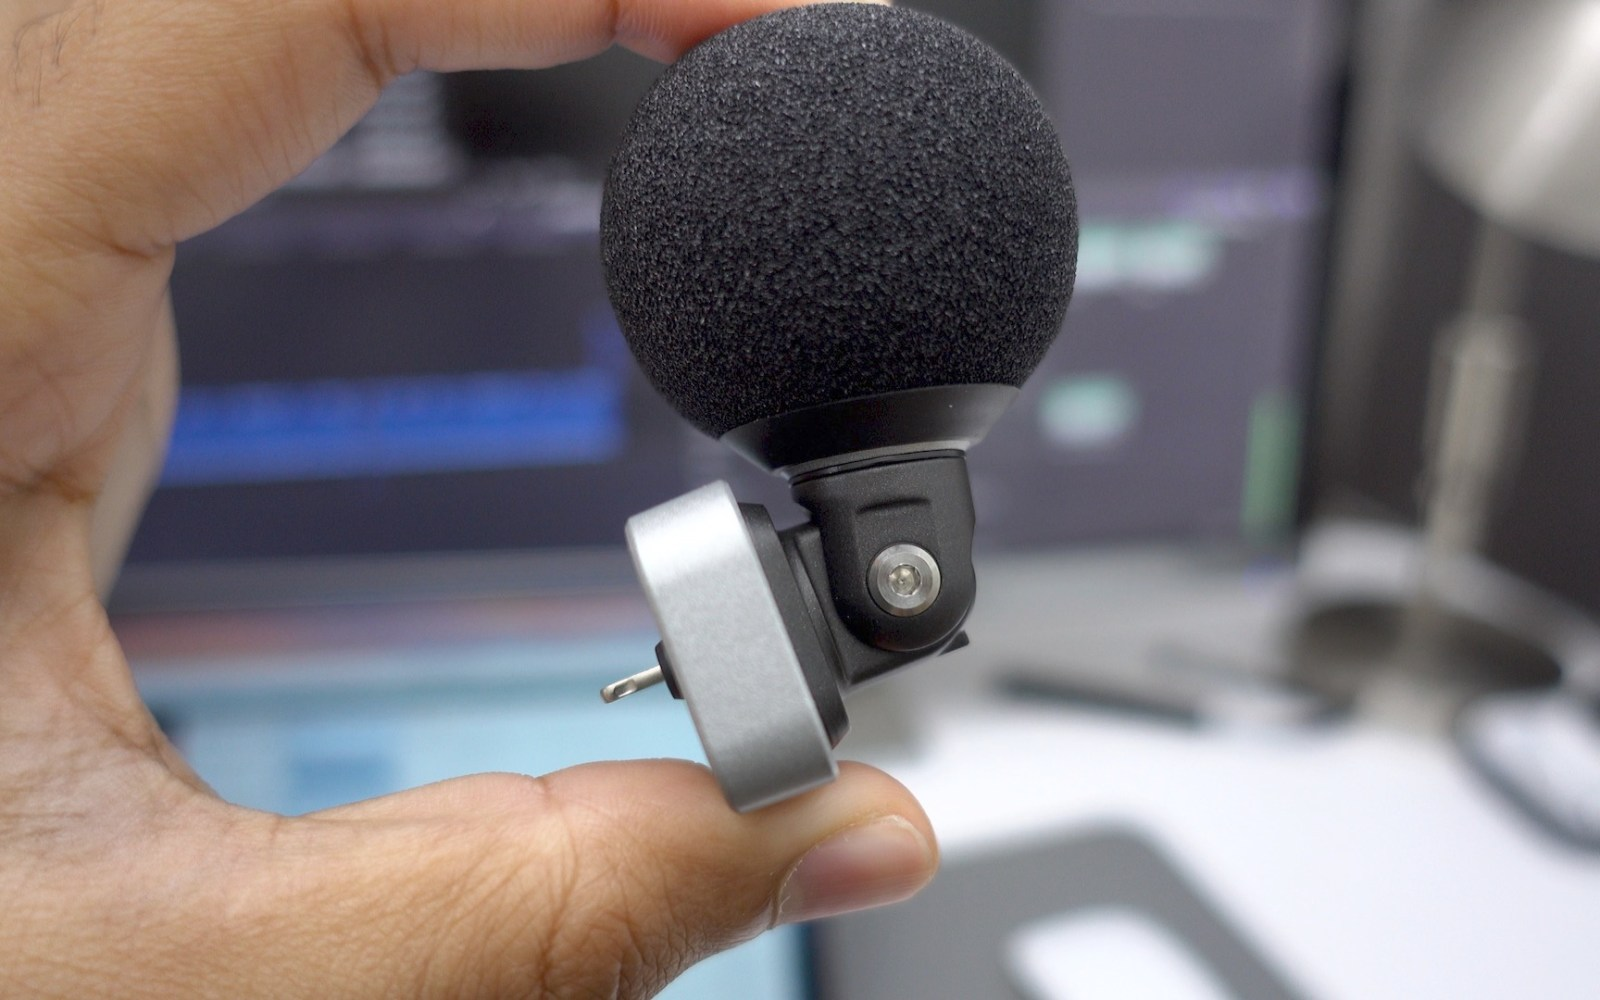 Shure MV88: a solid Lightning-enabled microphone for on-the-go recording [Video]